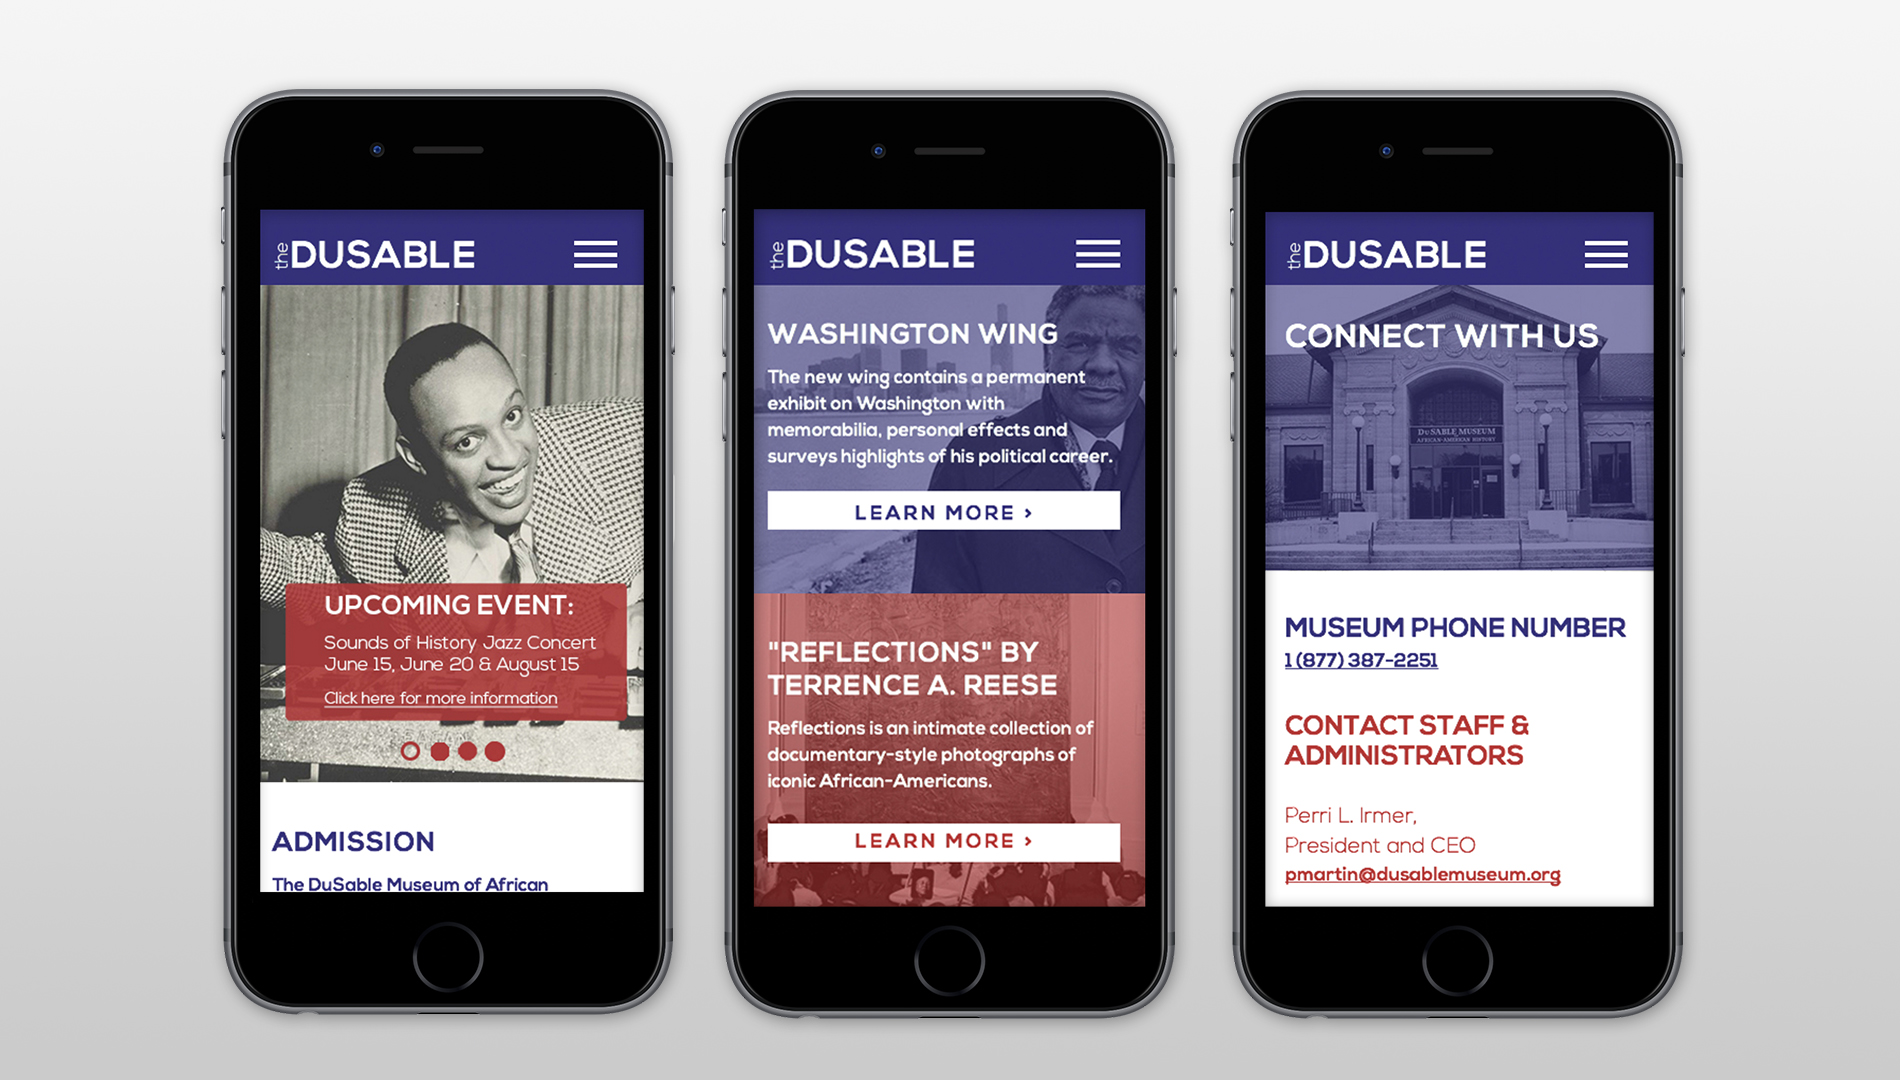 megan_small_dusable_mobile_site_7